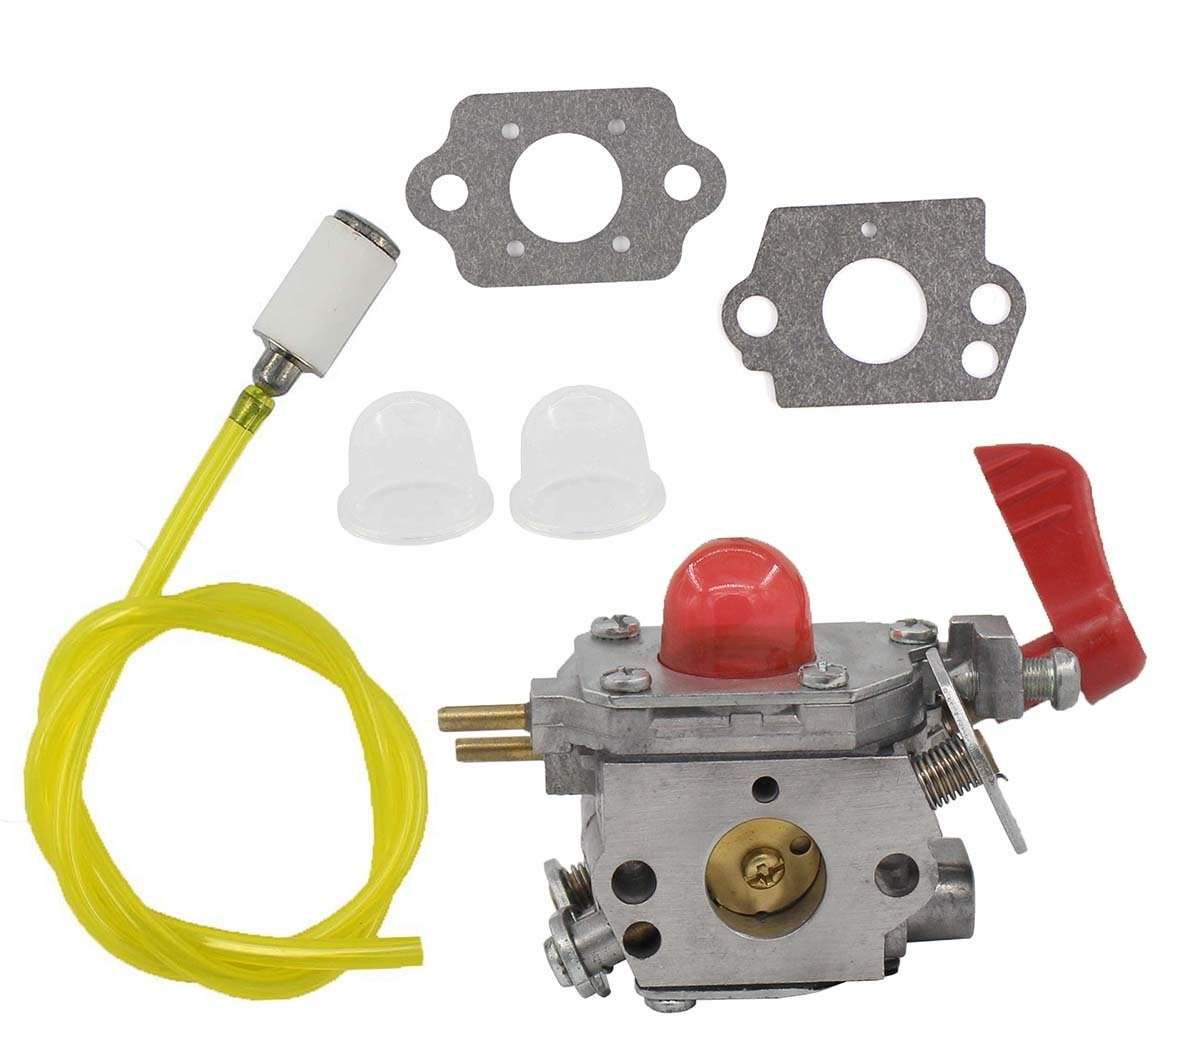 Carburetor For Poulan VS-2 BVM200FE Leaf Blower Zama C1U-W43 Craftsman Weedeater Poulan trimmer Poulan# 545081857